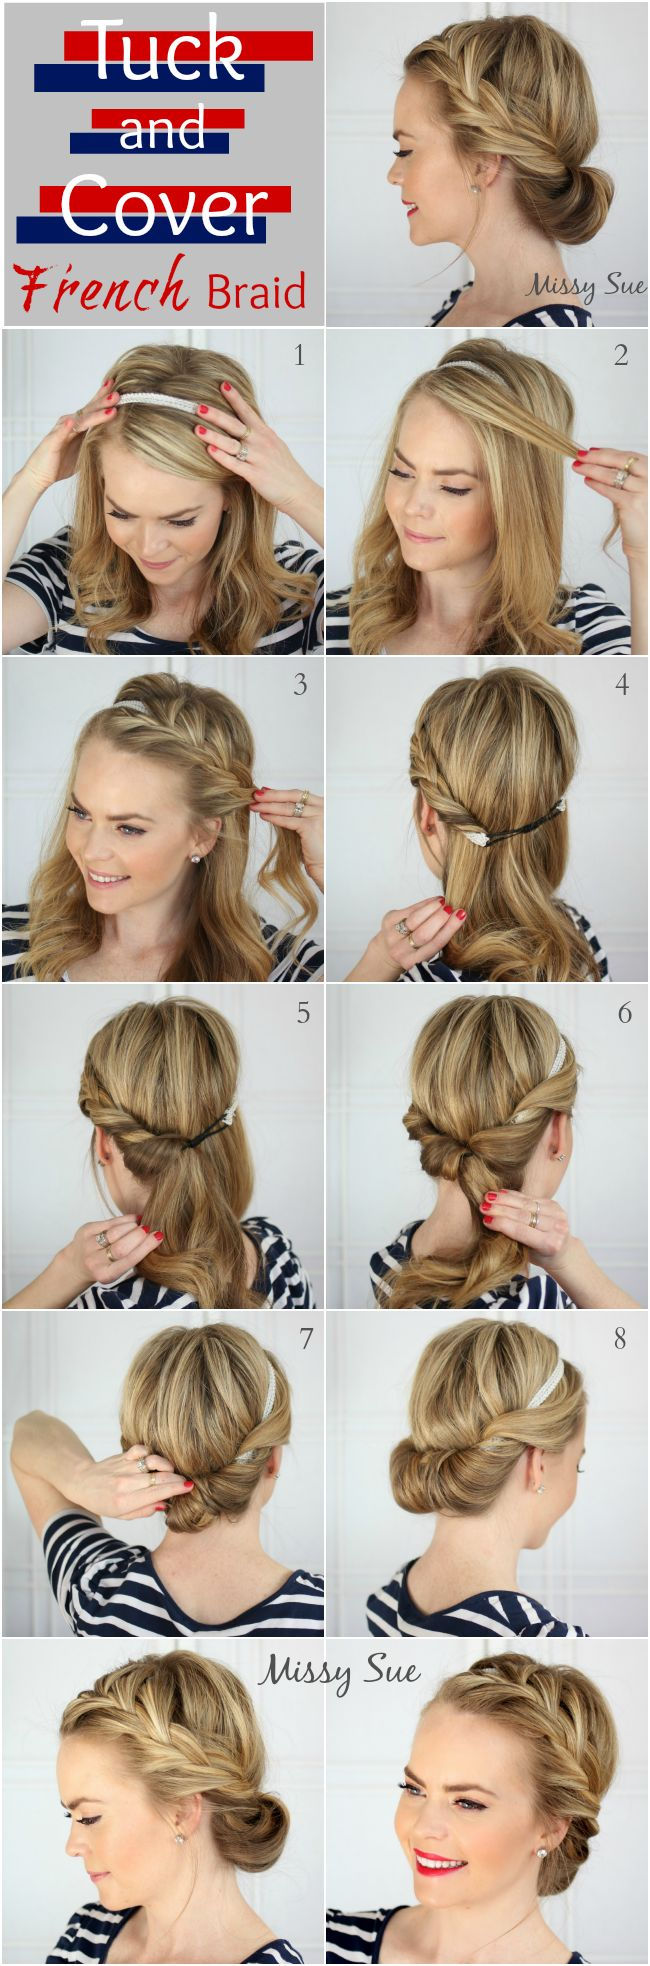 headband french braid